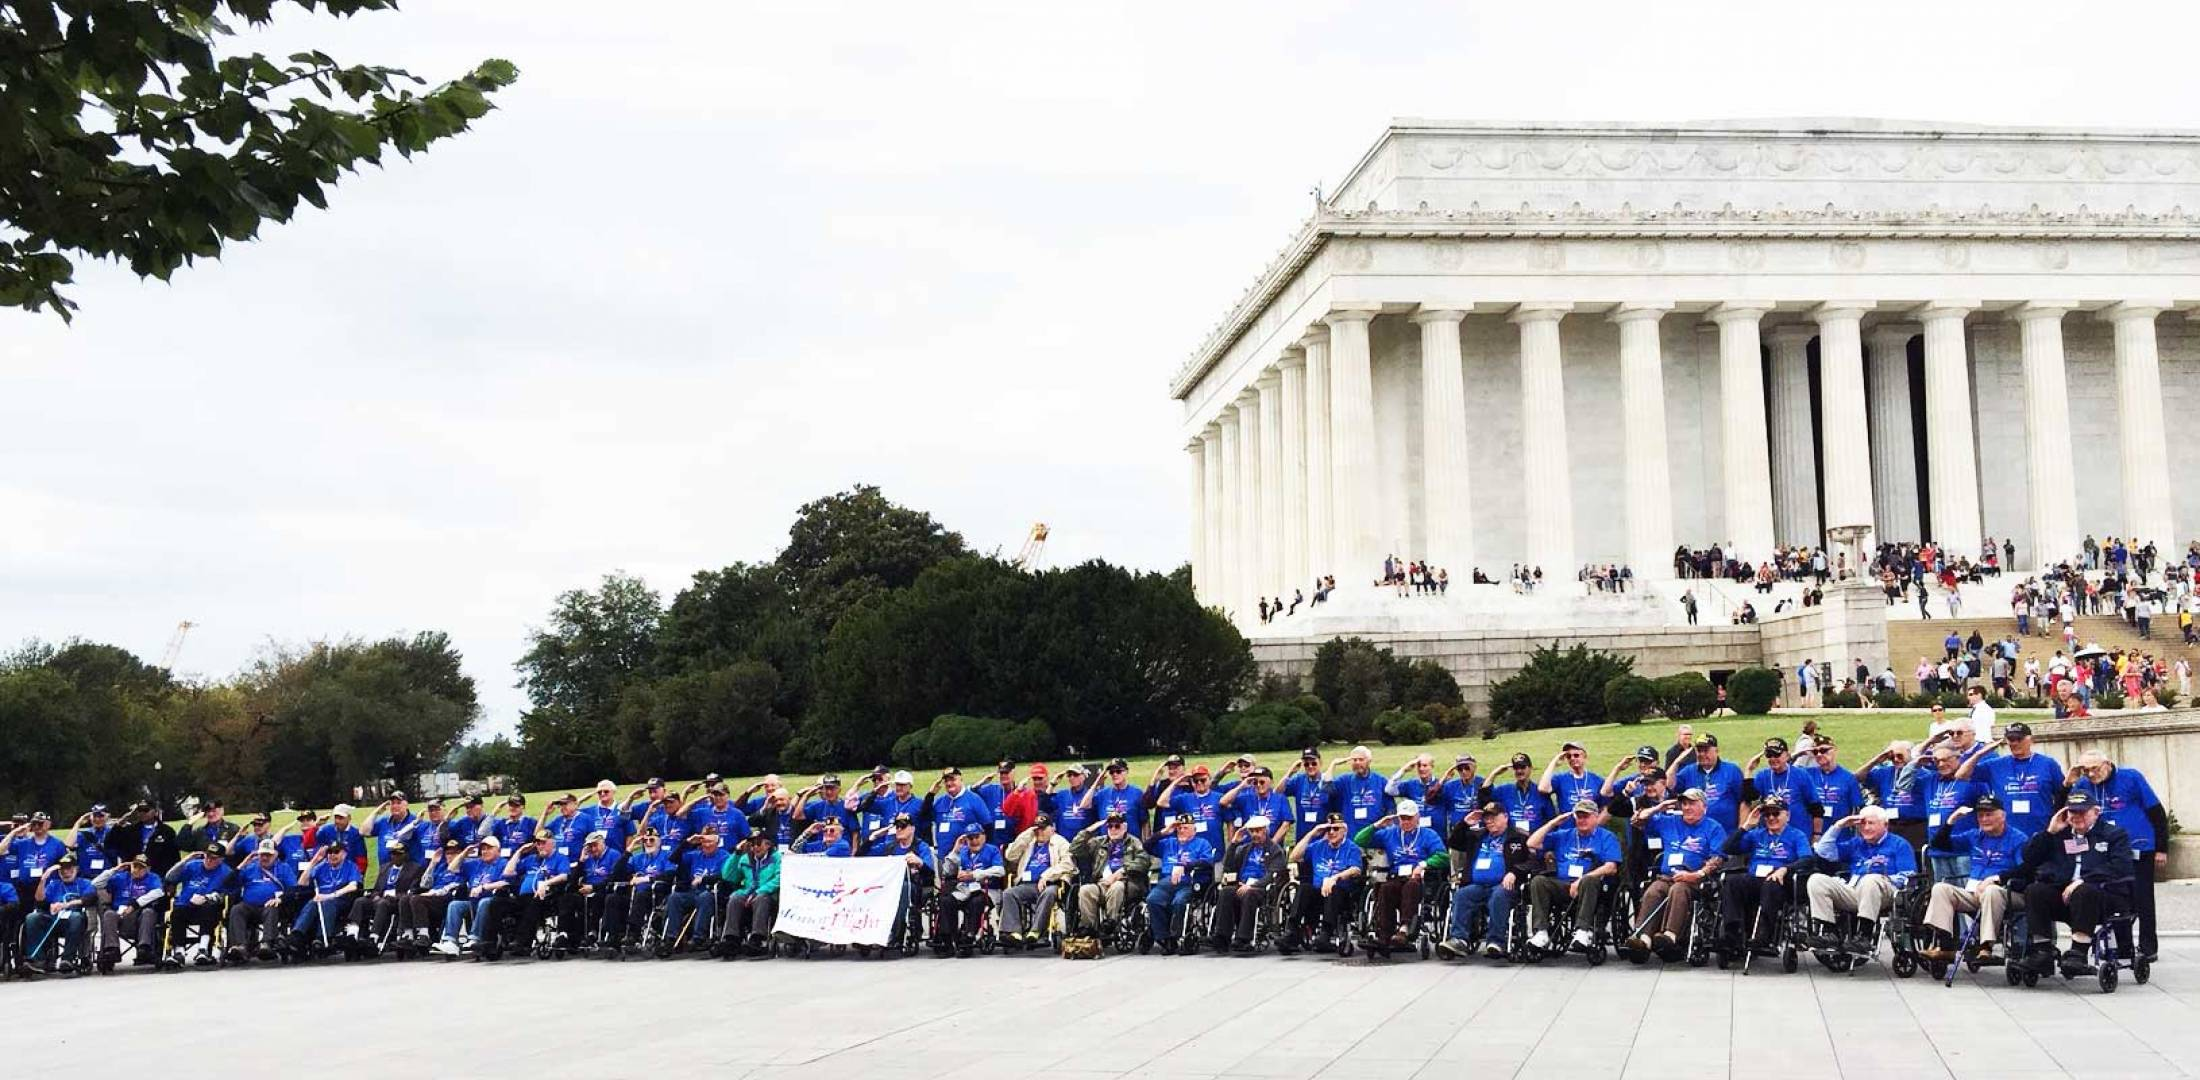 Group photo of veterans at Lincoln Memorial